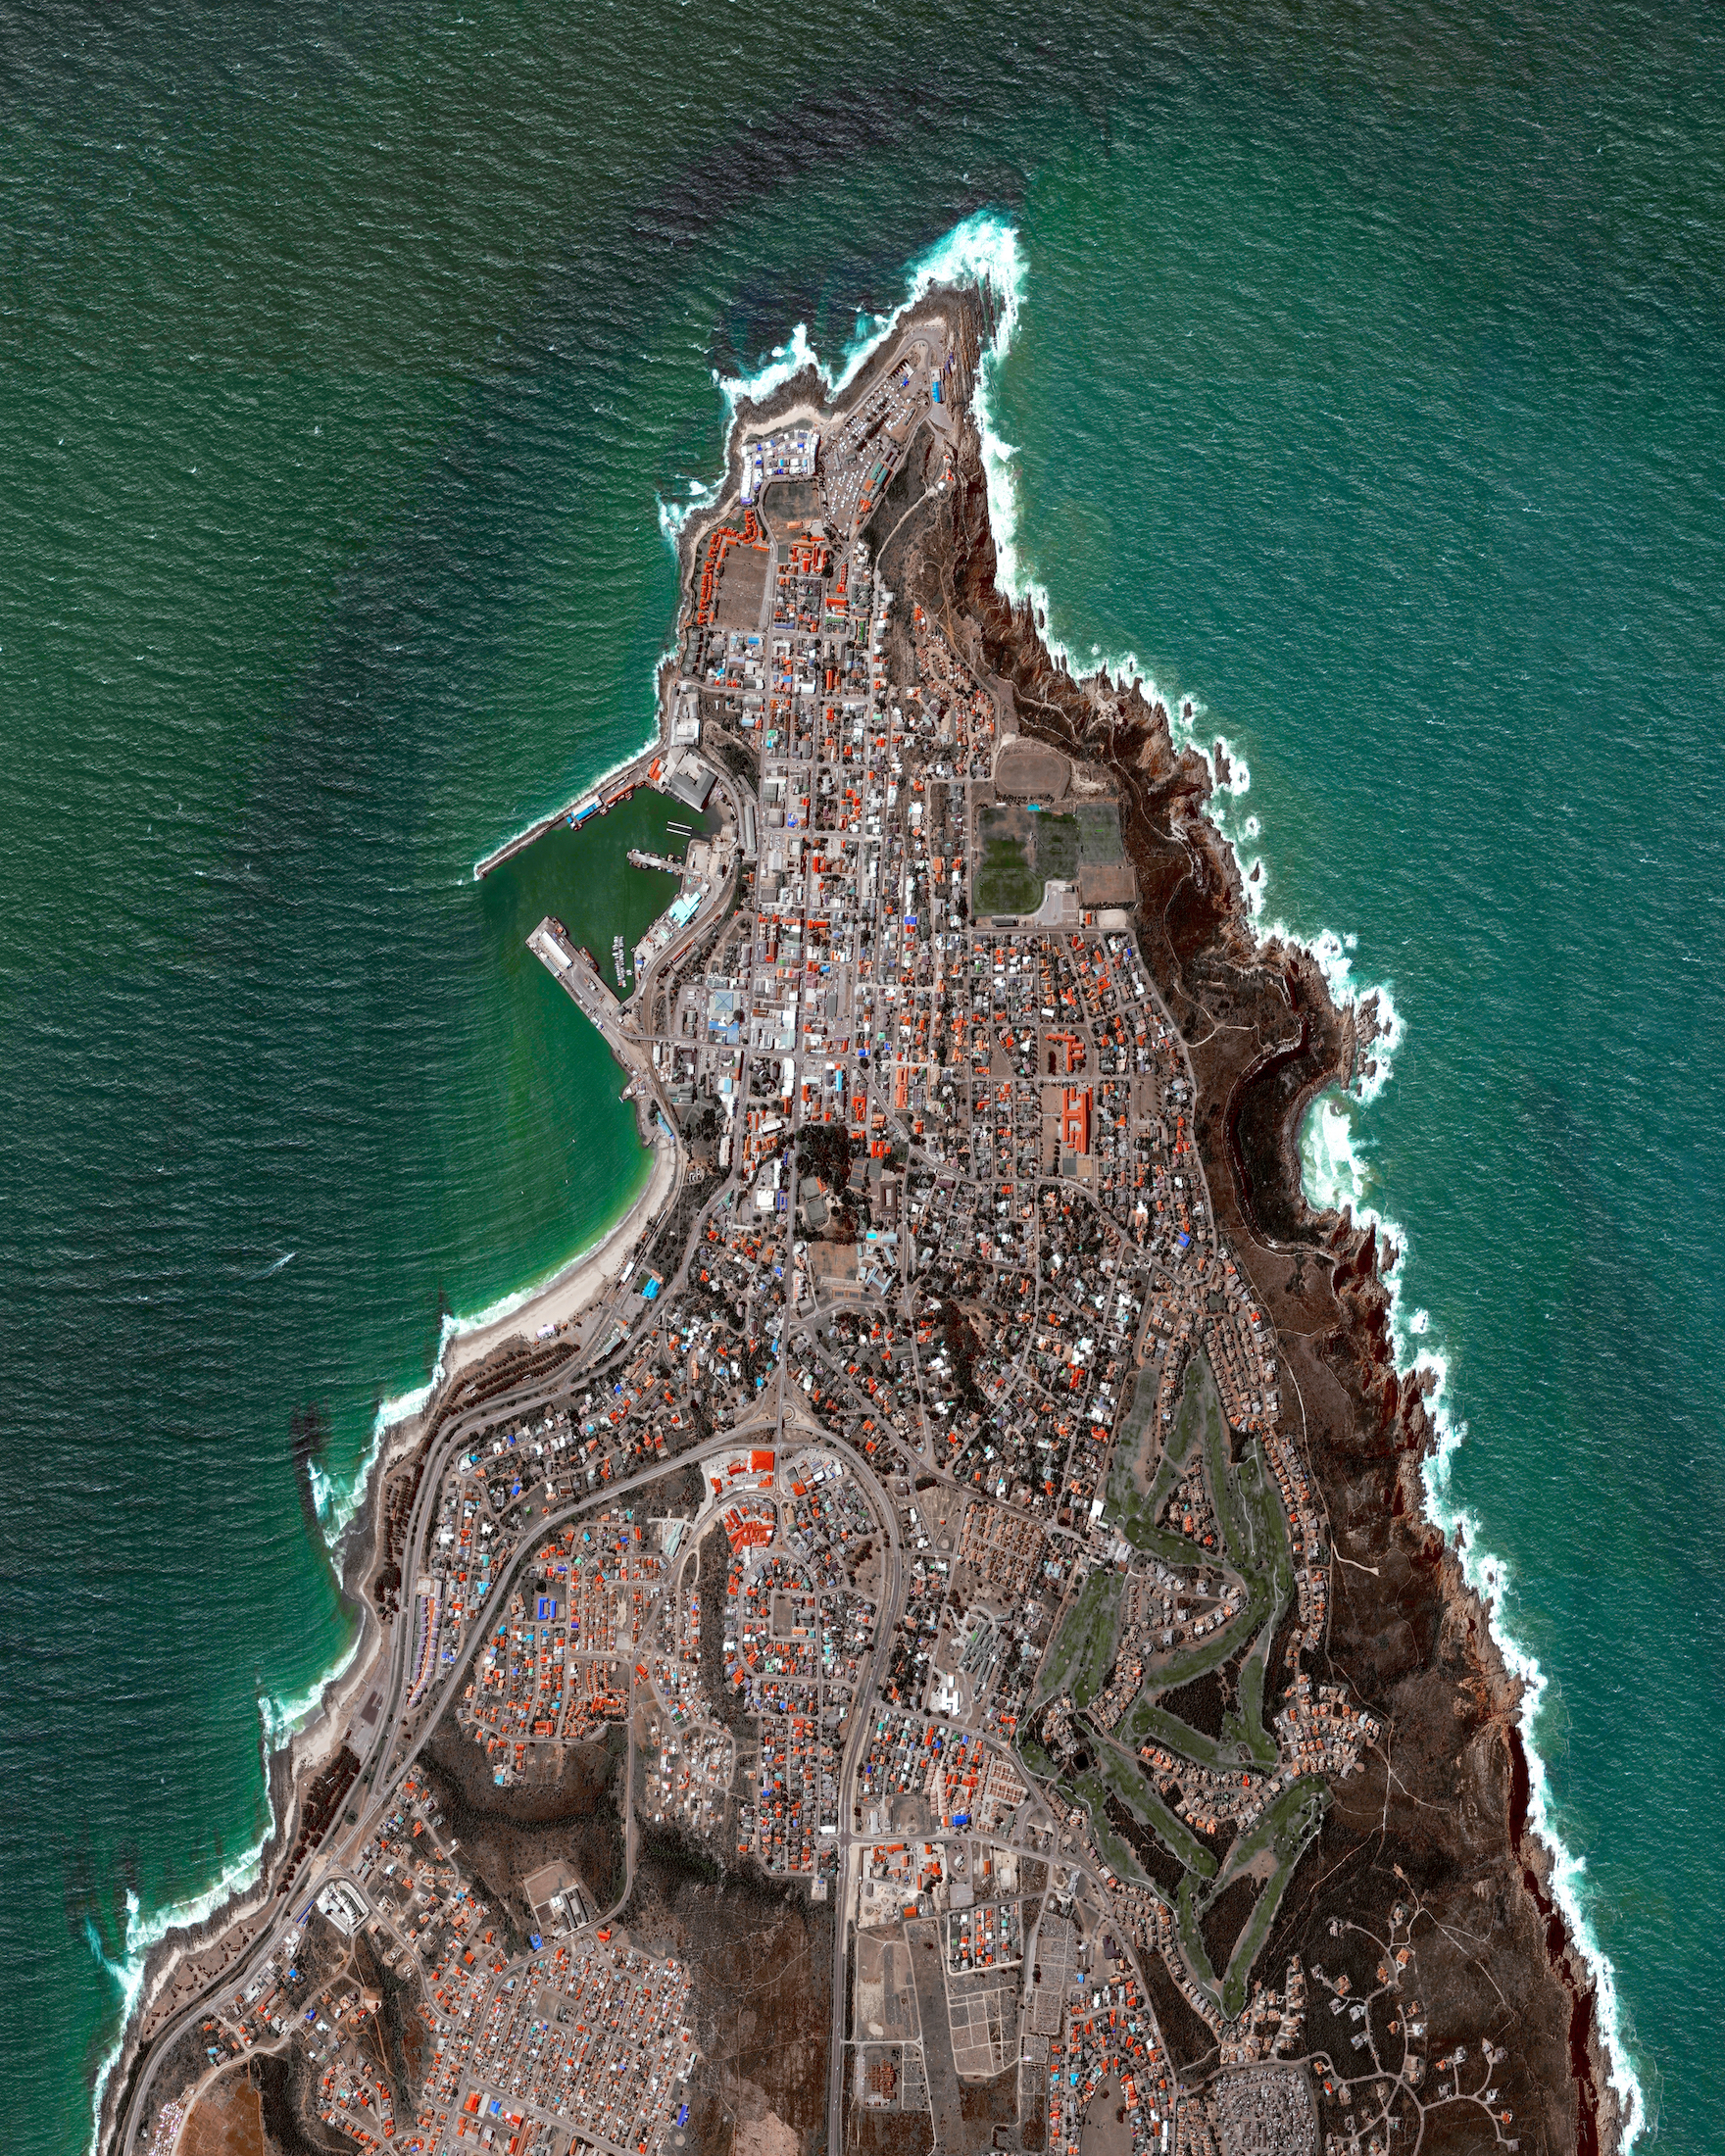 Mossel Bay is located on the Cape St. Blaize Peninsula, jutting out into the Indian Ocean of South Africa. The harbor town is home to roughly 130,000 people and is recognized as a center for both tourism and agriculture.  34°11′00″S 22°08′00″E